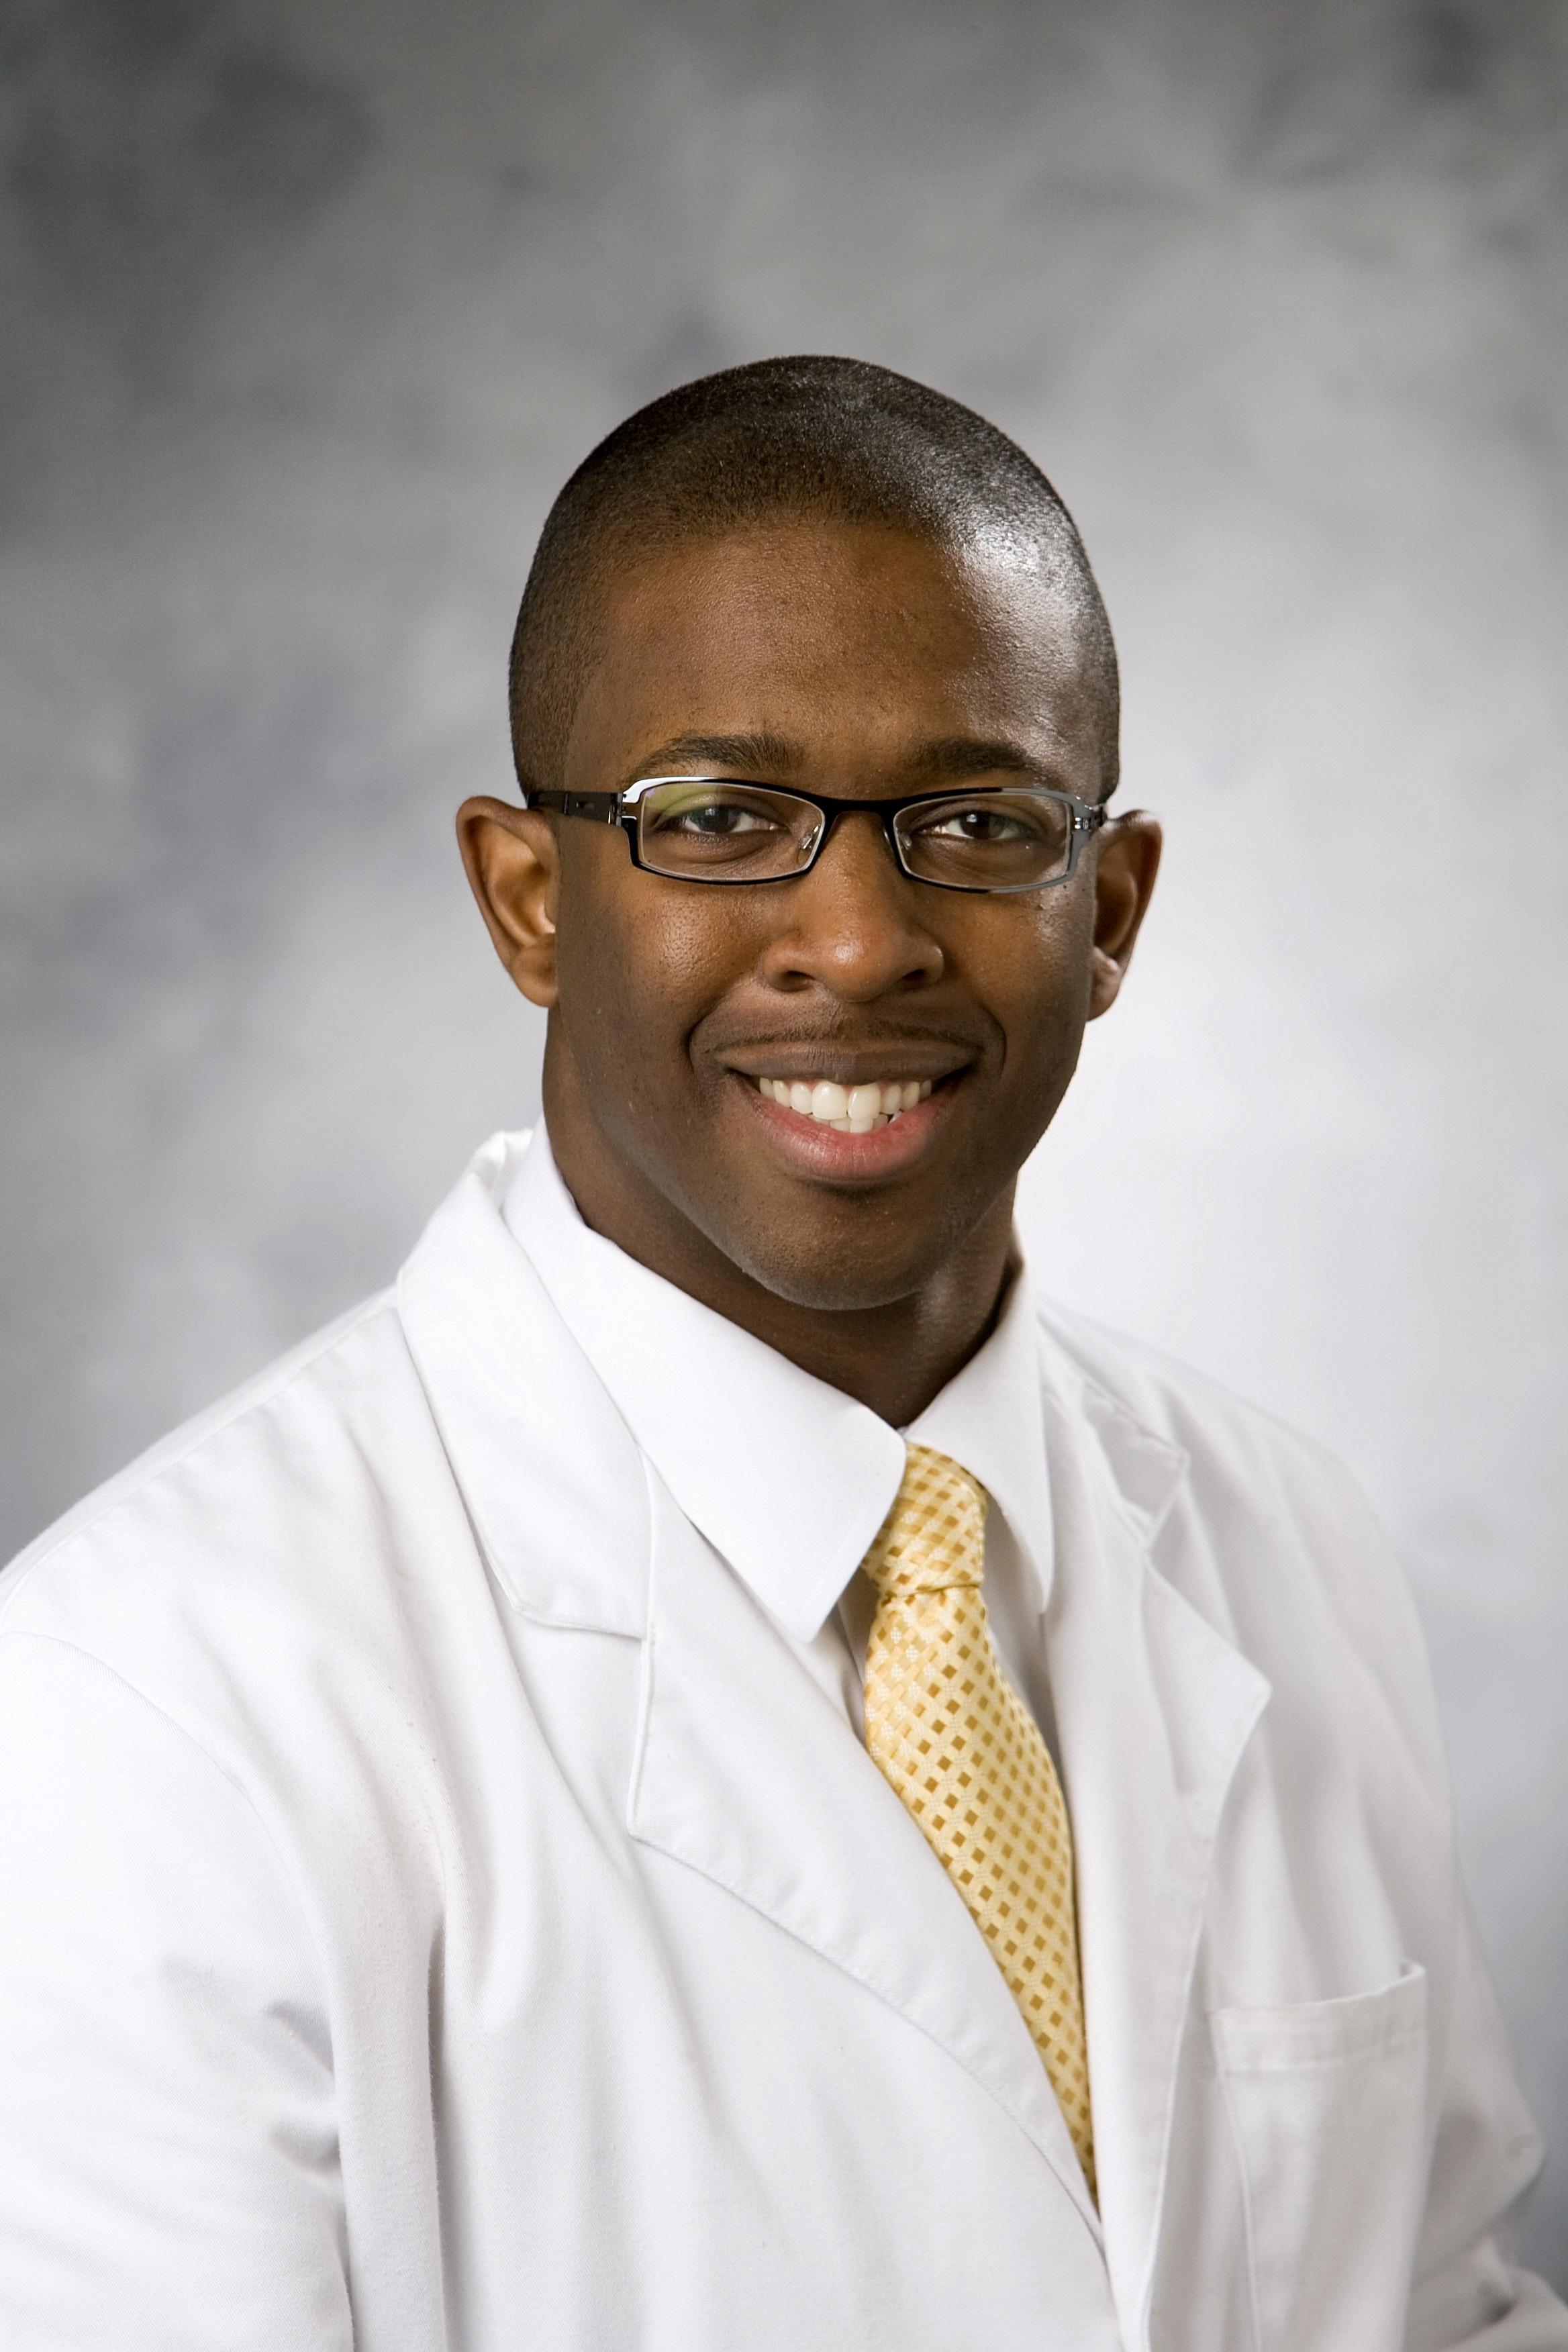 Dr. Terrence Crowder